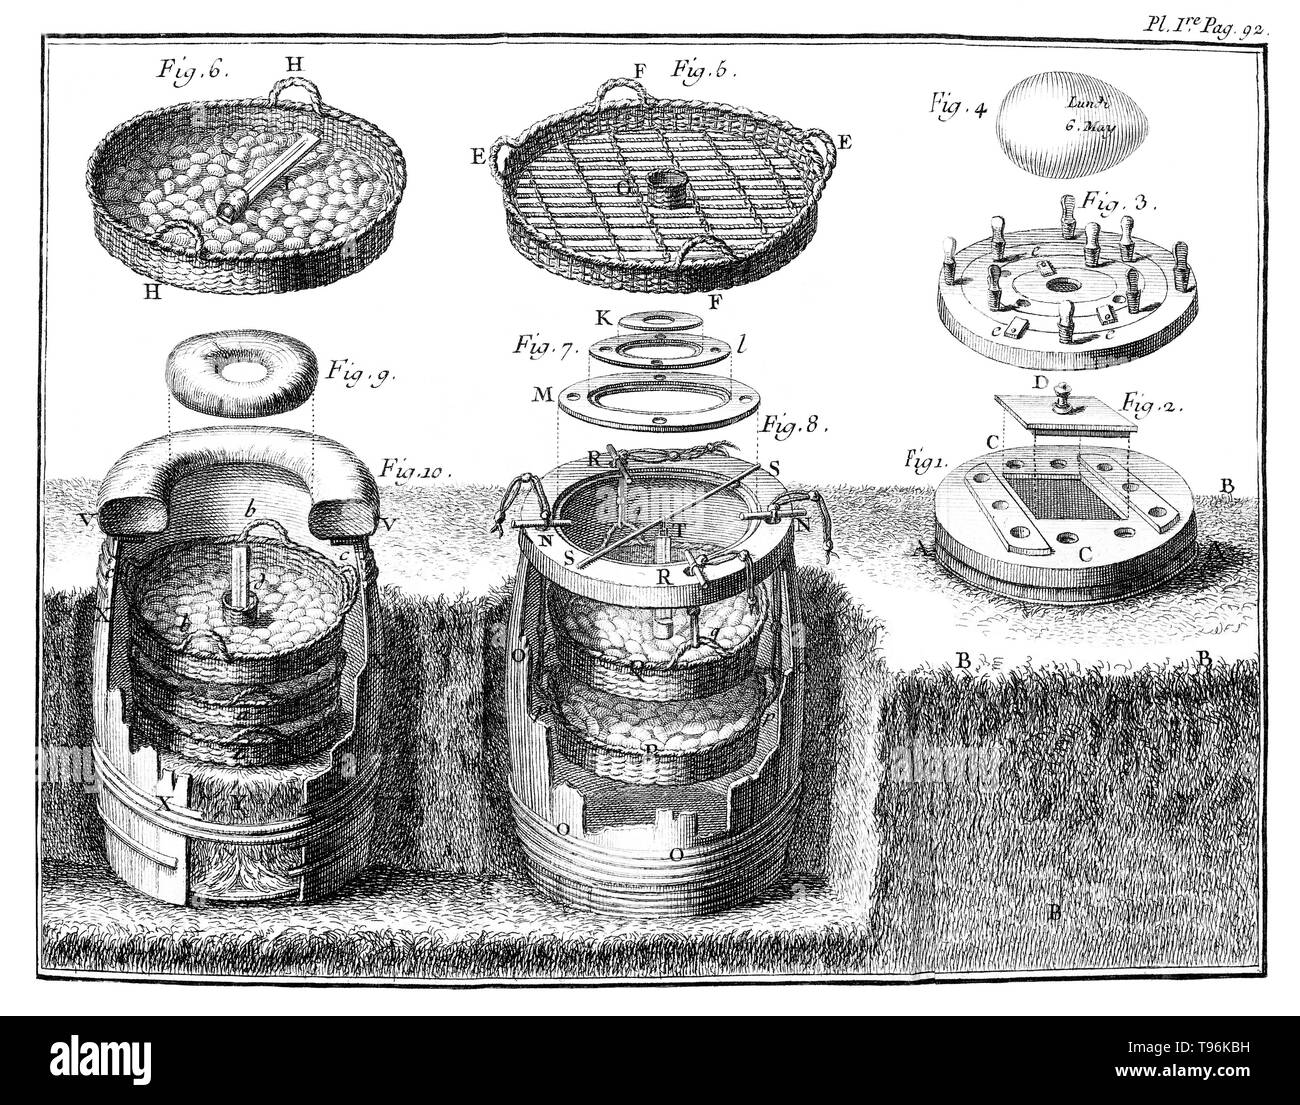 Page 92, plate 1: Poultry: egg incubators. Practice of the art of hatching and breeding in all season domestic birds. All species, either by means of the heat of the manure, either by means of that of the fire ordinary by René de Réaumur, 1751. René Antoine Ferchault de Réaumur (February 28, 1683 - October 17, 1757) was a French scientist who contributed to many different fields, especially the study of insects. In 1699 he studied civil law and mathematics. In 1703 he went to Paris, where he continued the study of mathematics and physics, and in 1708 was elected, at the age of 24, a member of  - Stock Image